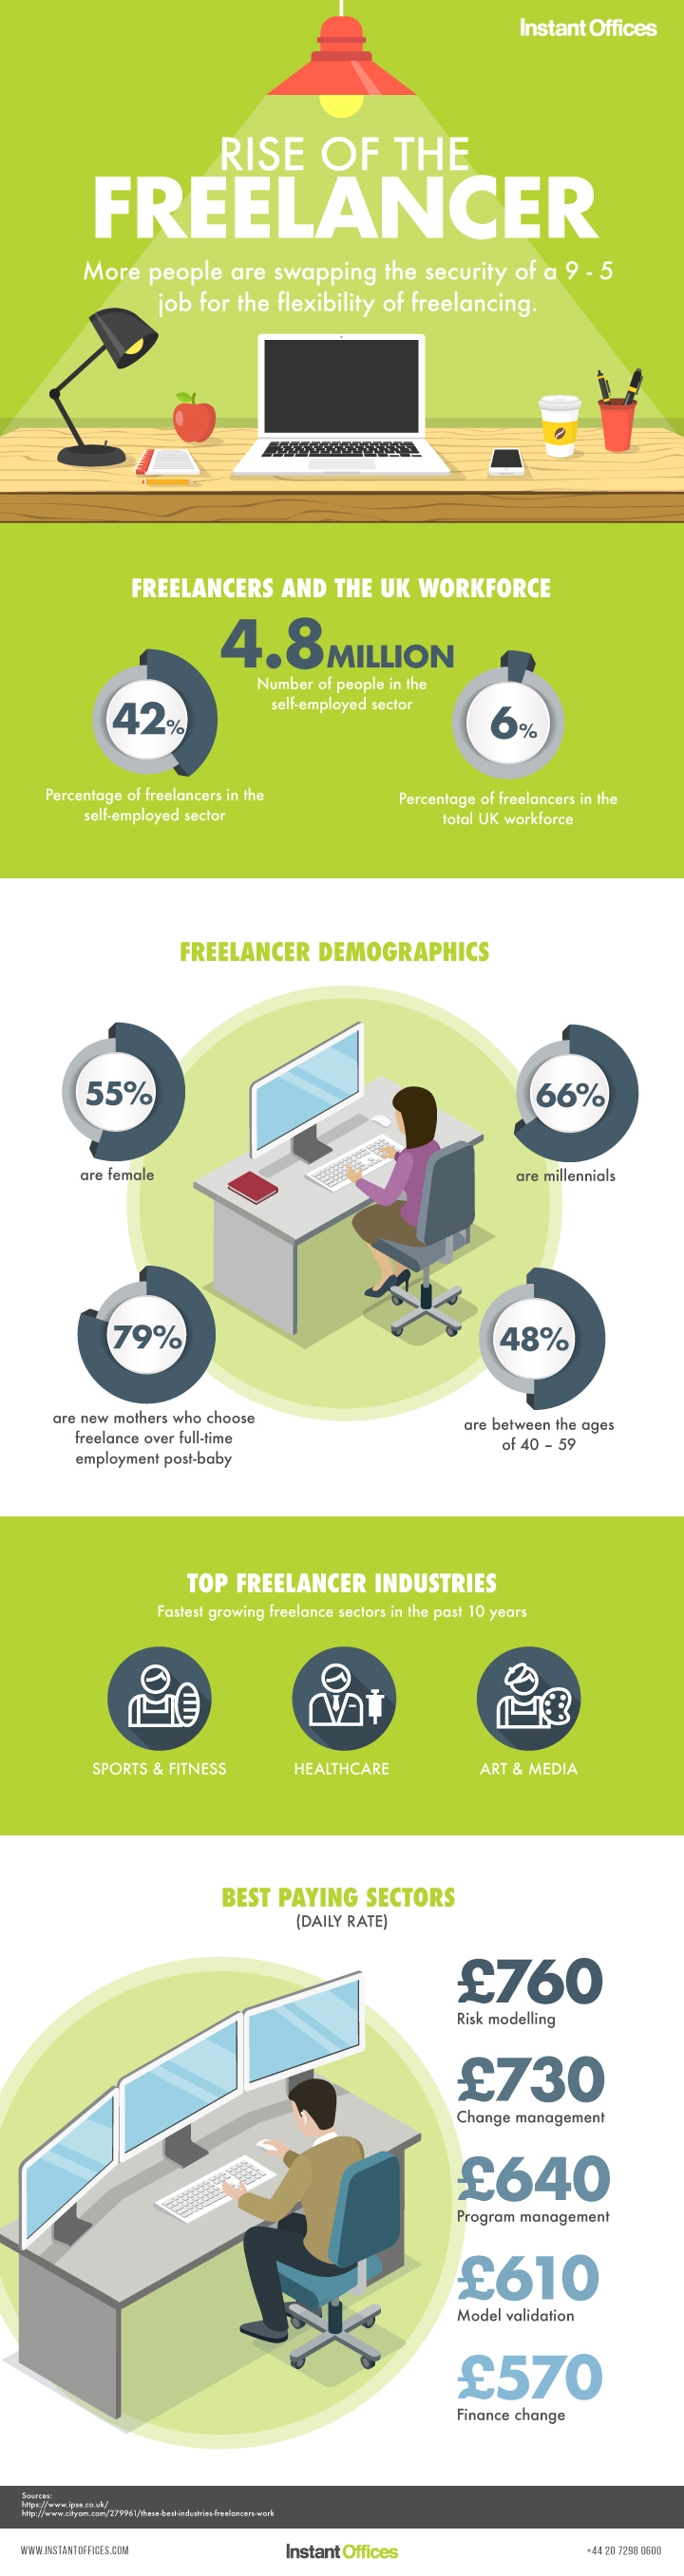 Rise-of-the-freelancer